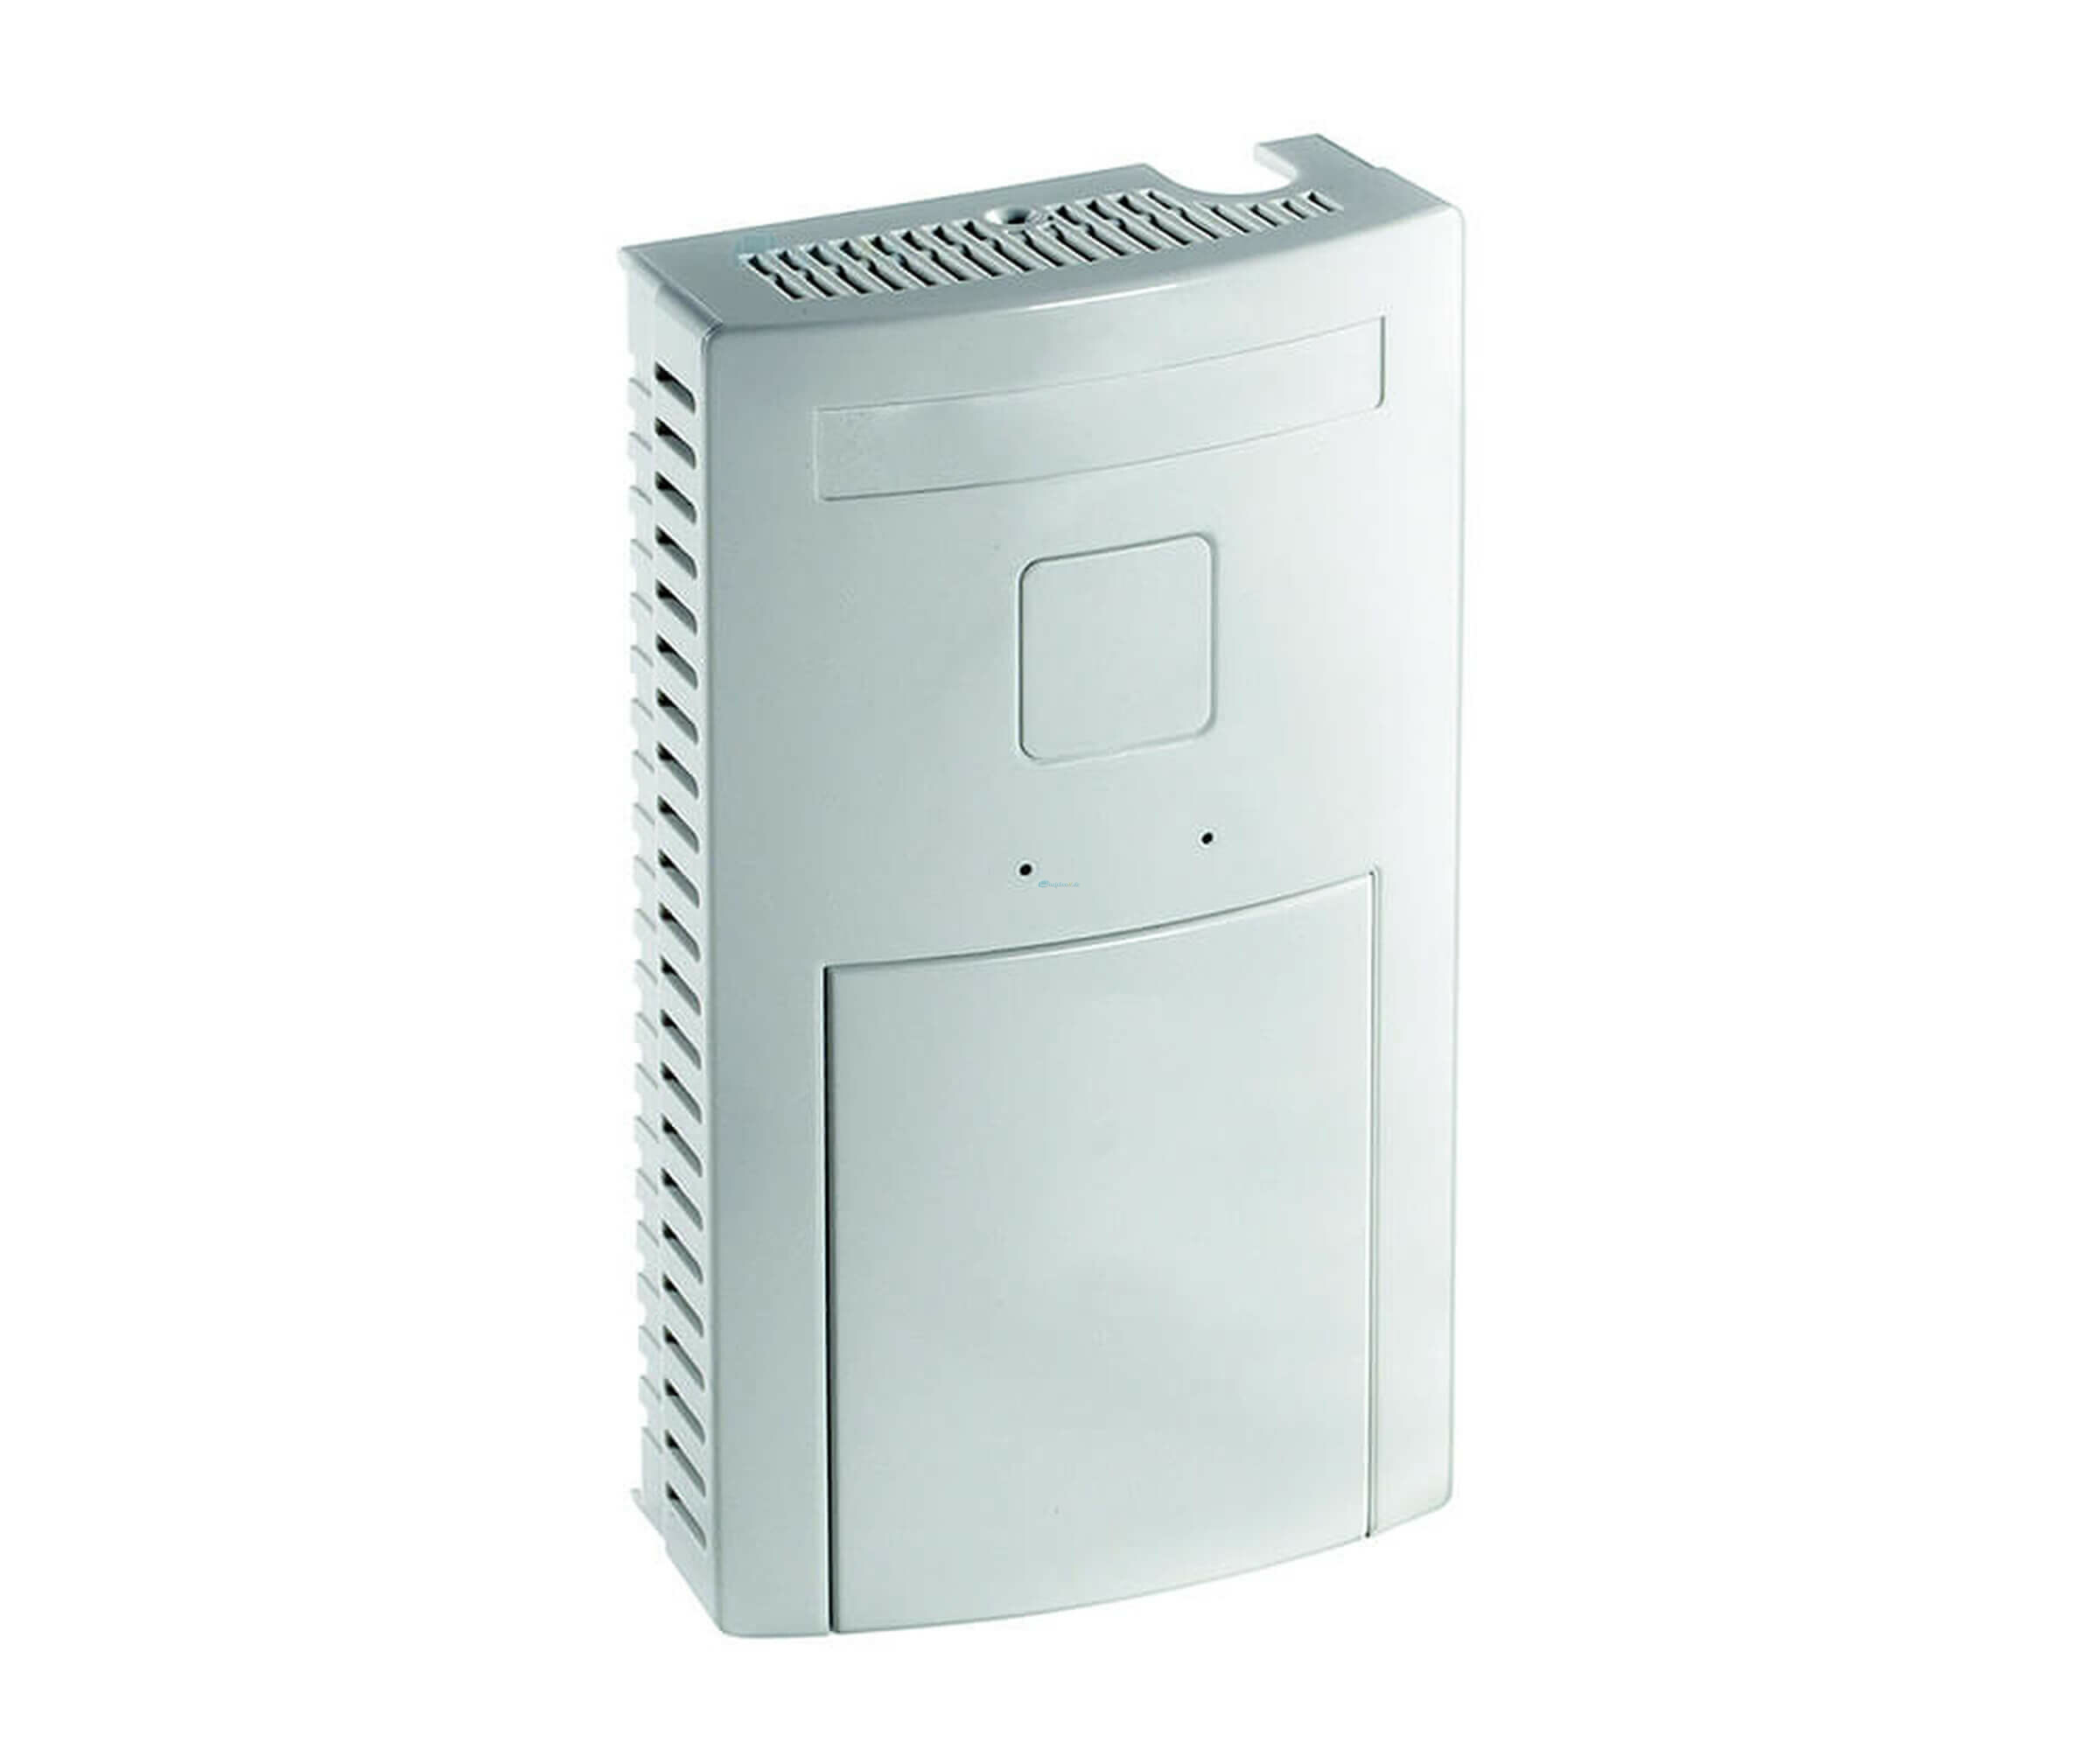 Motorola - AP 6511 - Wall Plate Access Point - drahtlose Basisstation - AP-6511-60010-WR